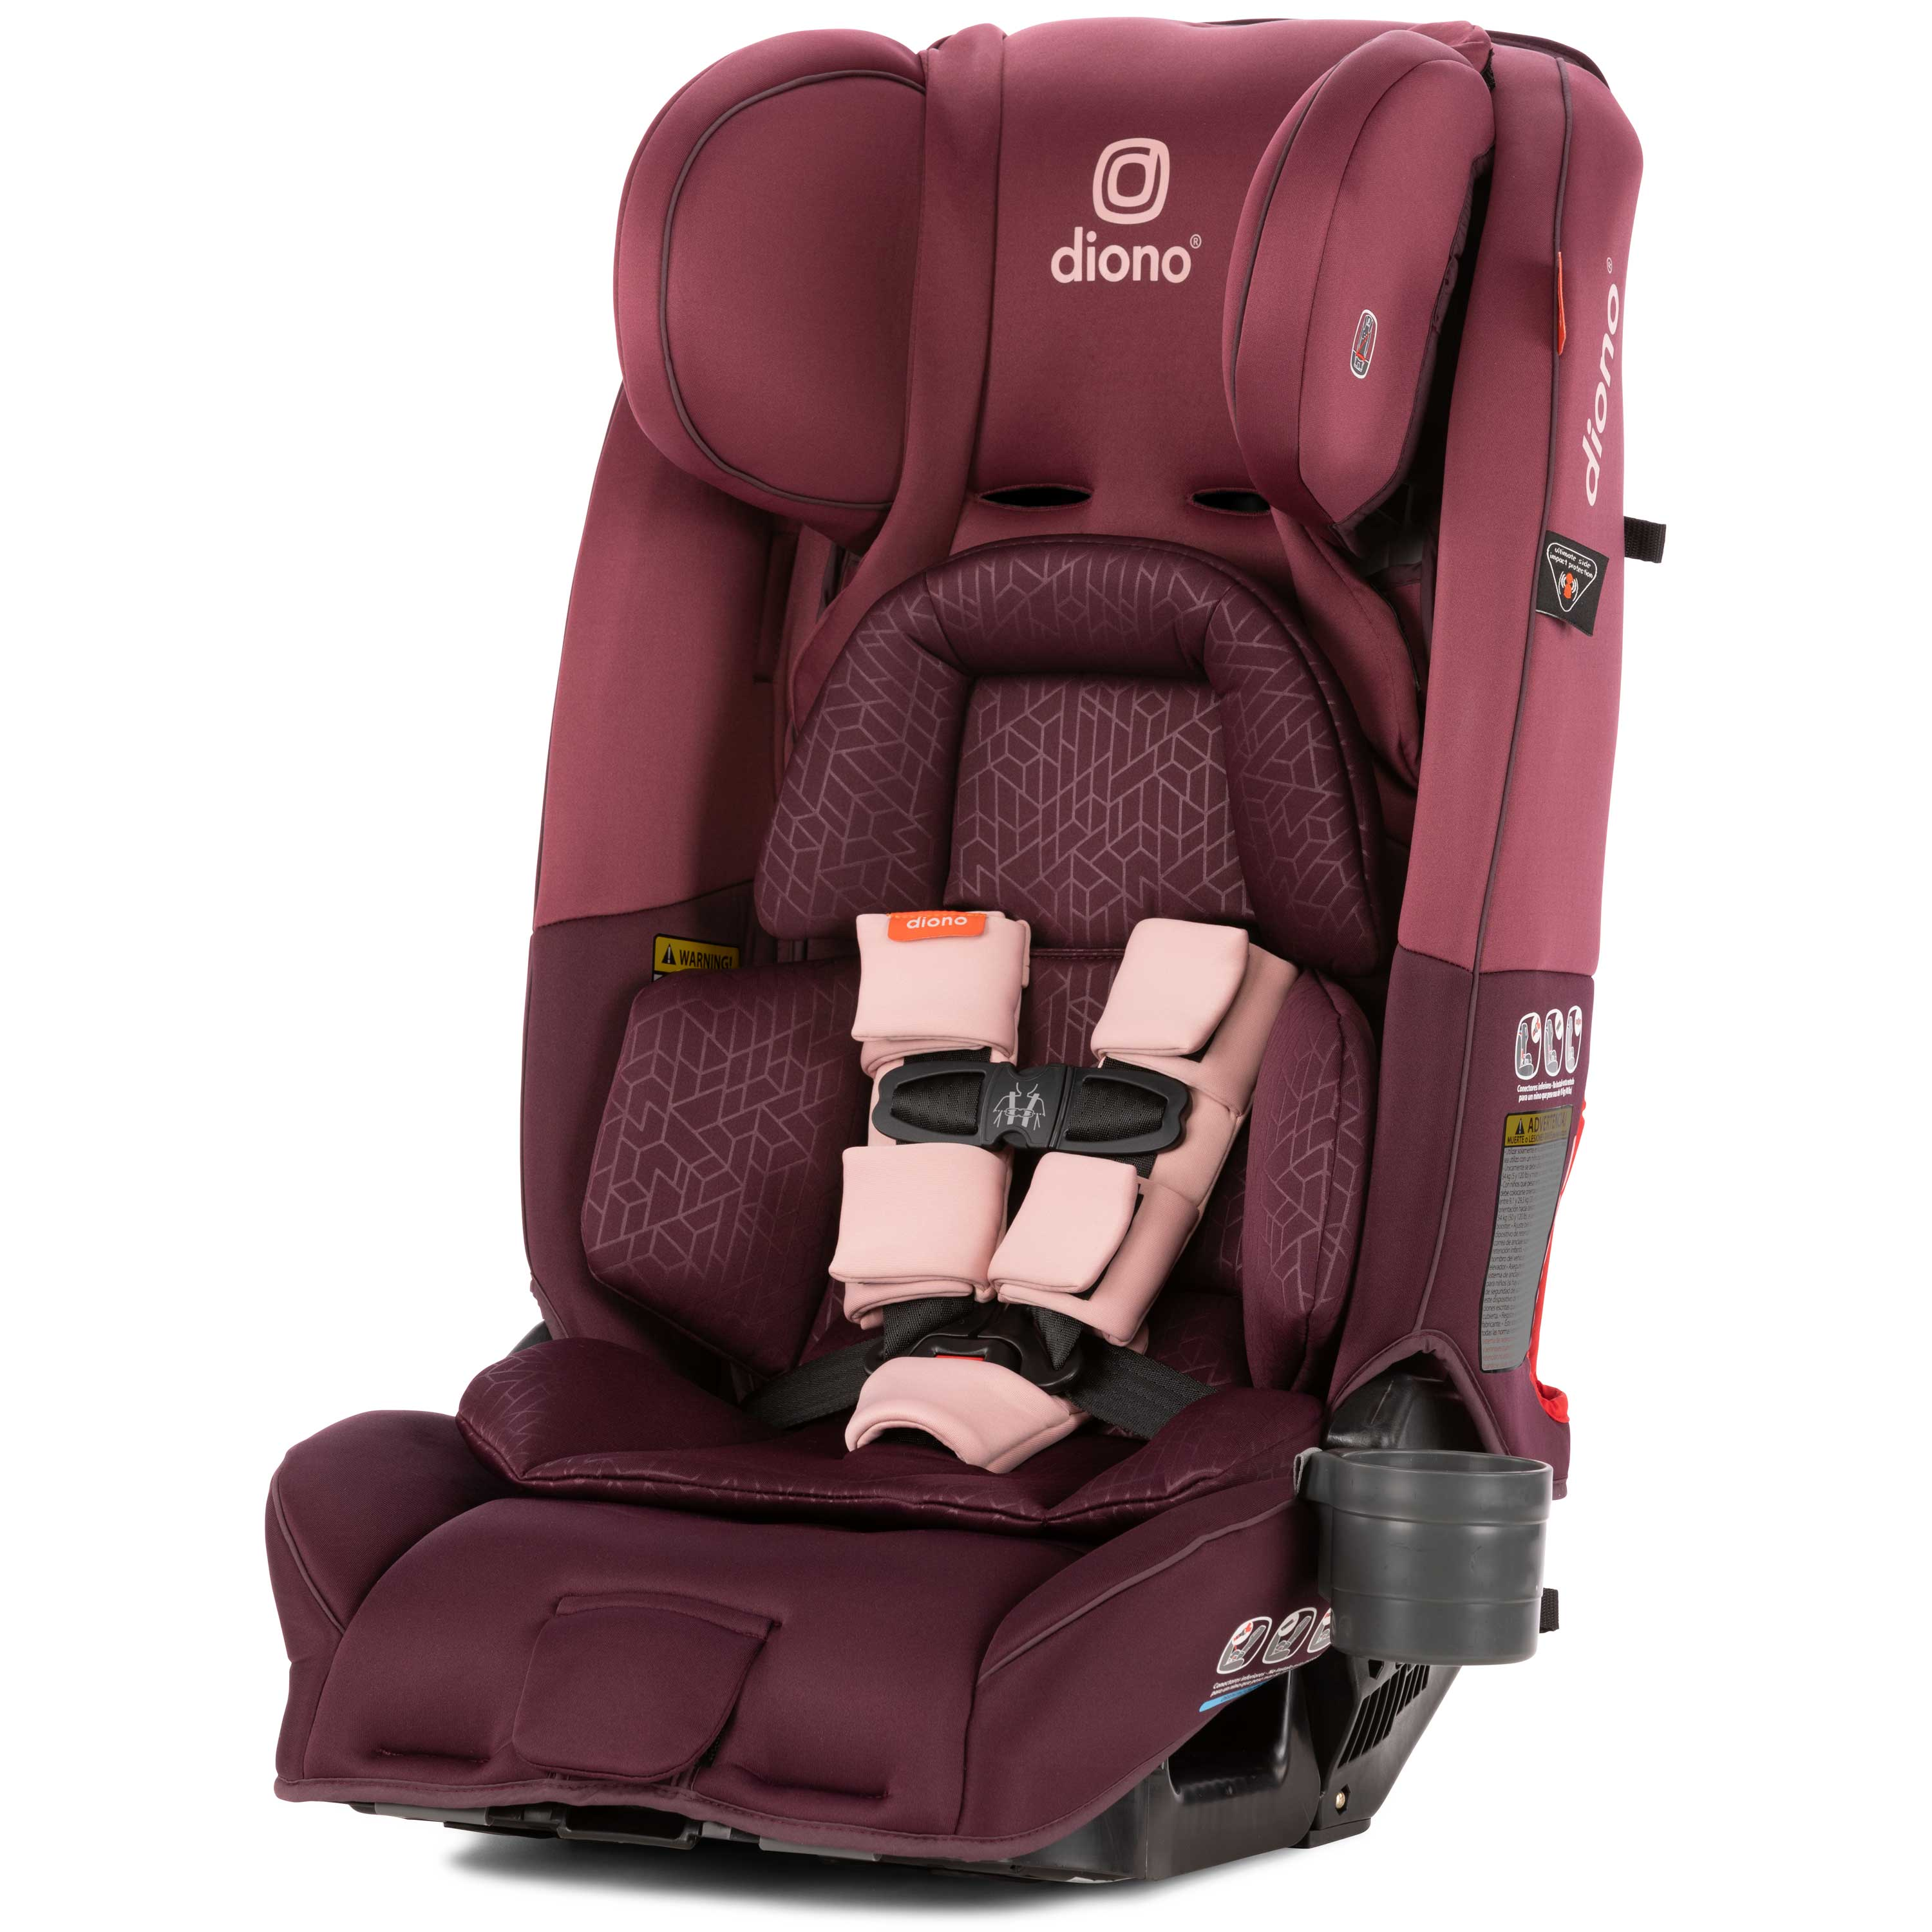 Diono Radian 3 RXT All-in-One Convertible Car Seat Extended Rear-facing 5-45 lbs., Forward-facing to 65 lbs.,... by Diono